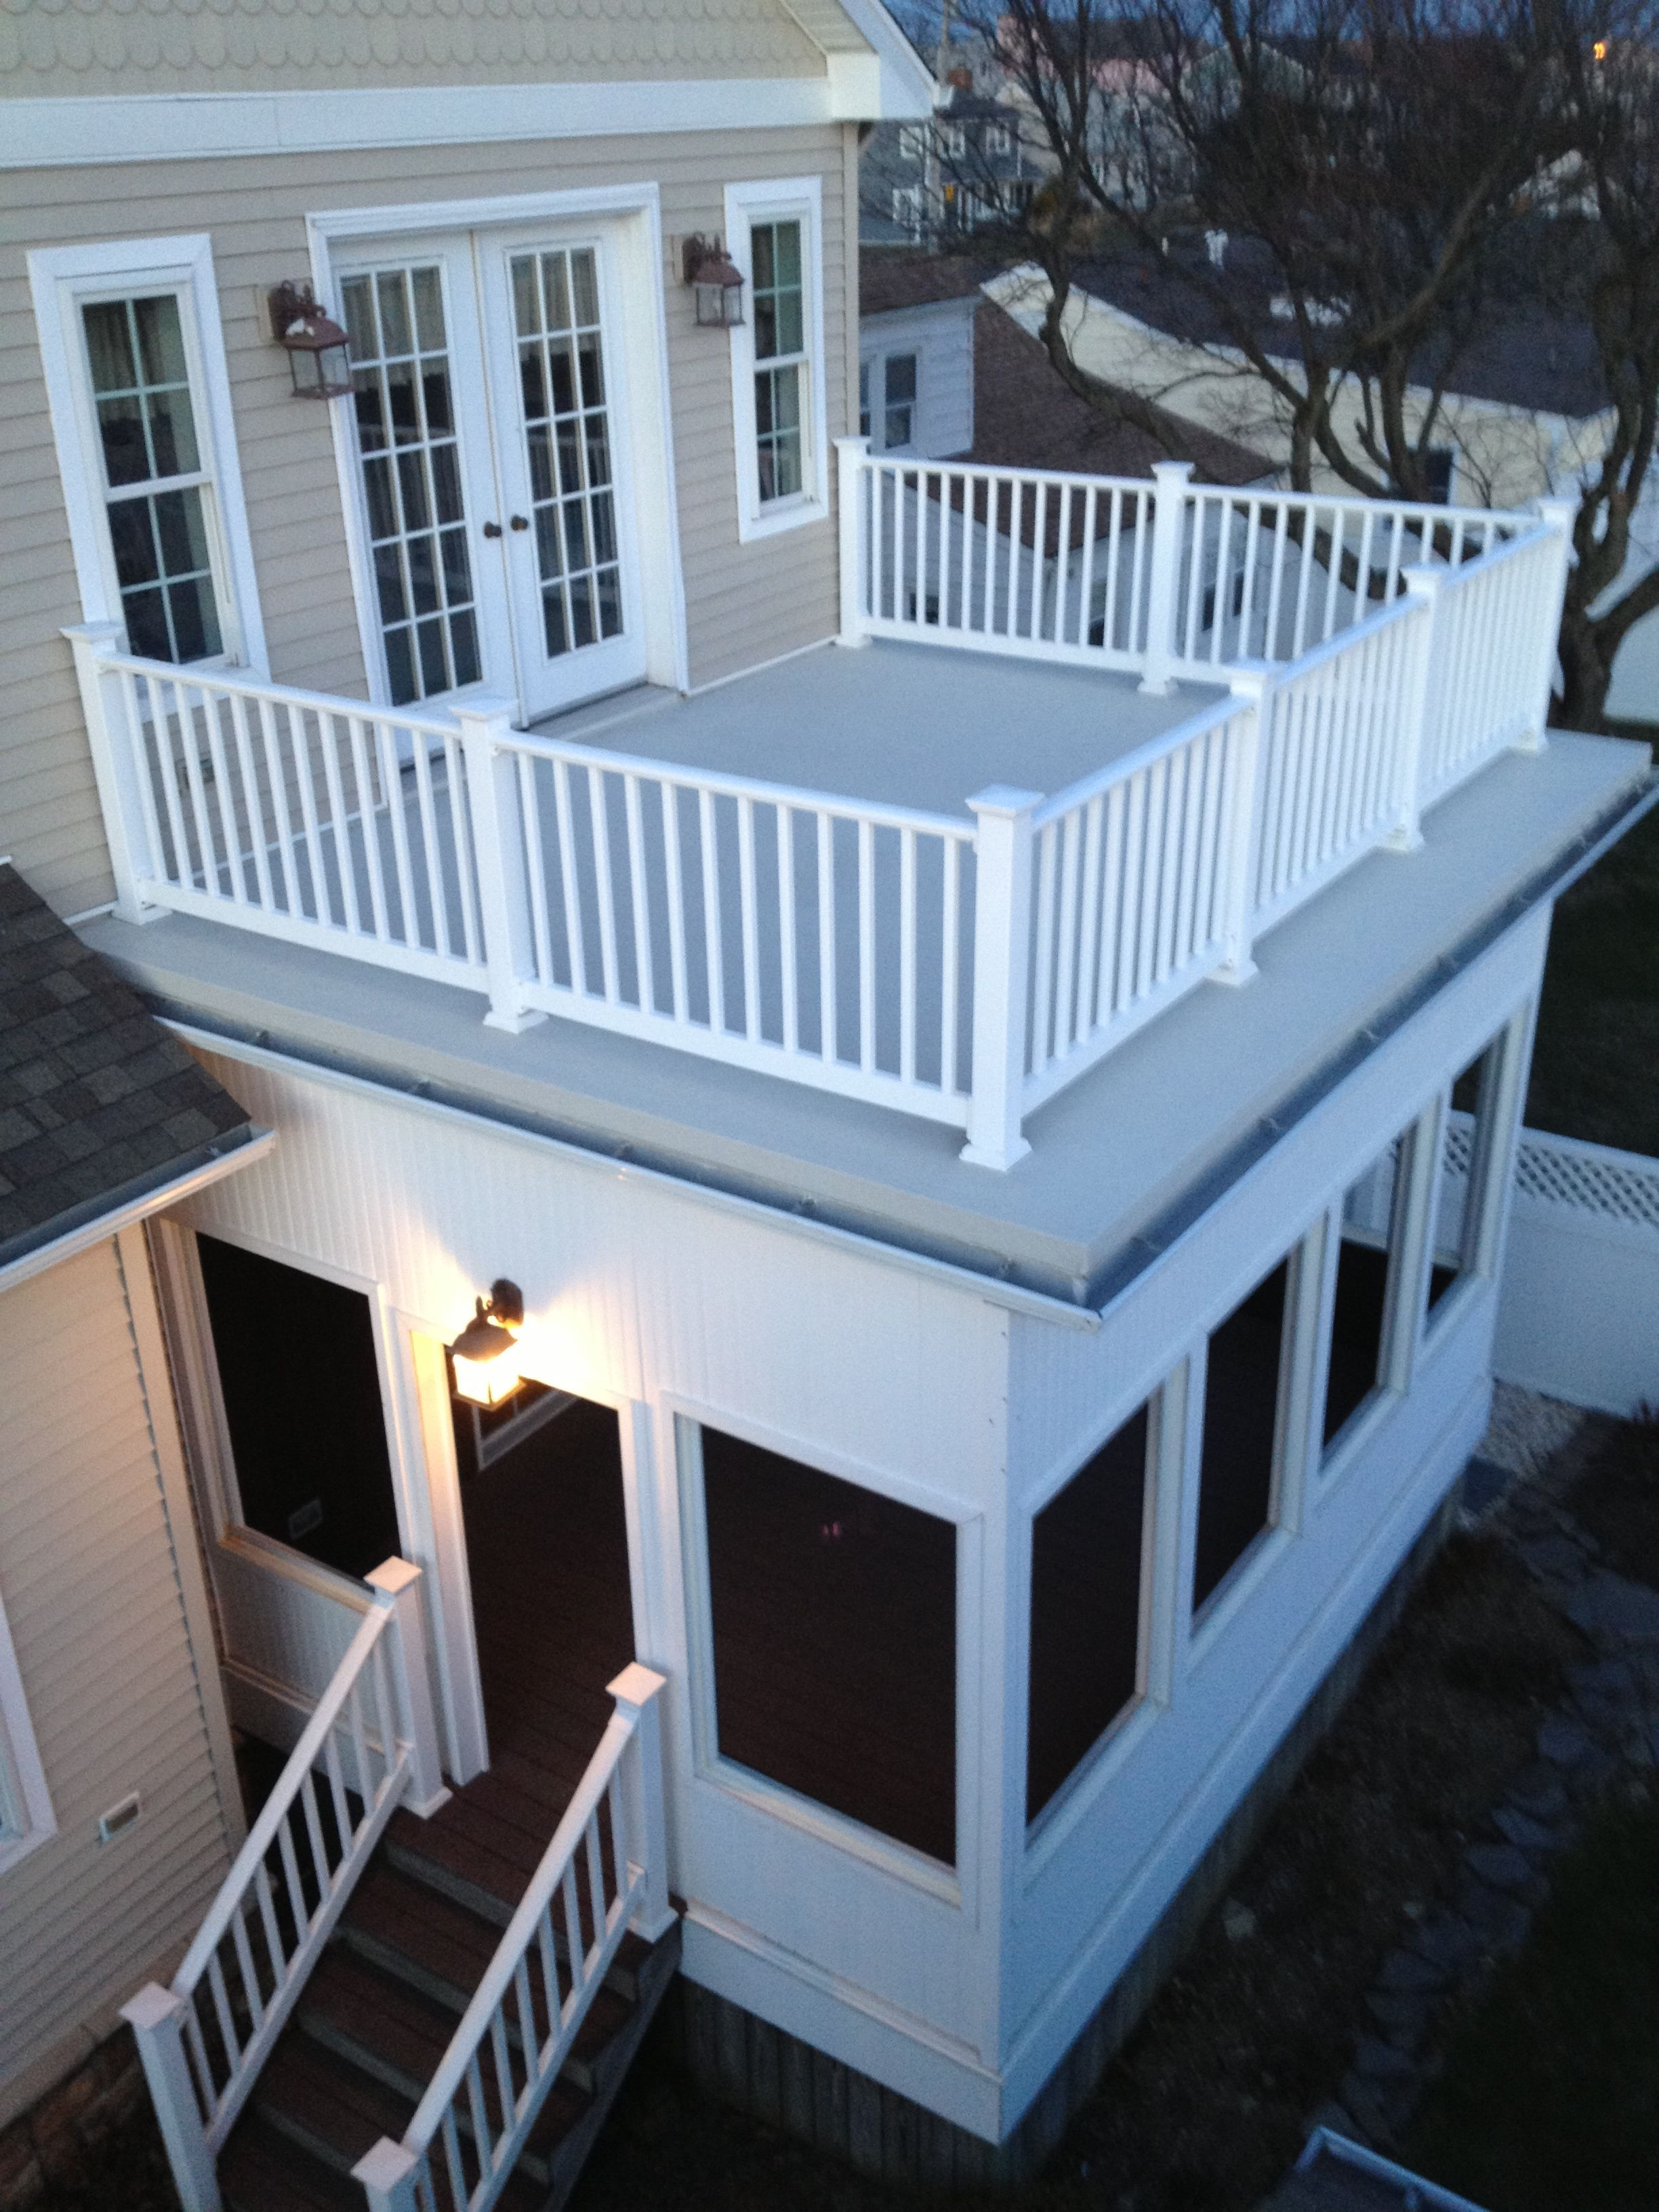 Top 40 Screened In Porch Ideas For All Seasons [Small